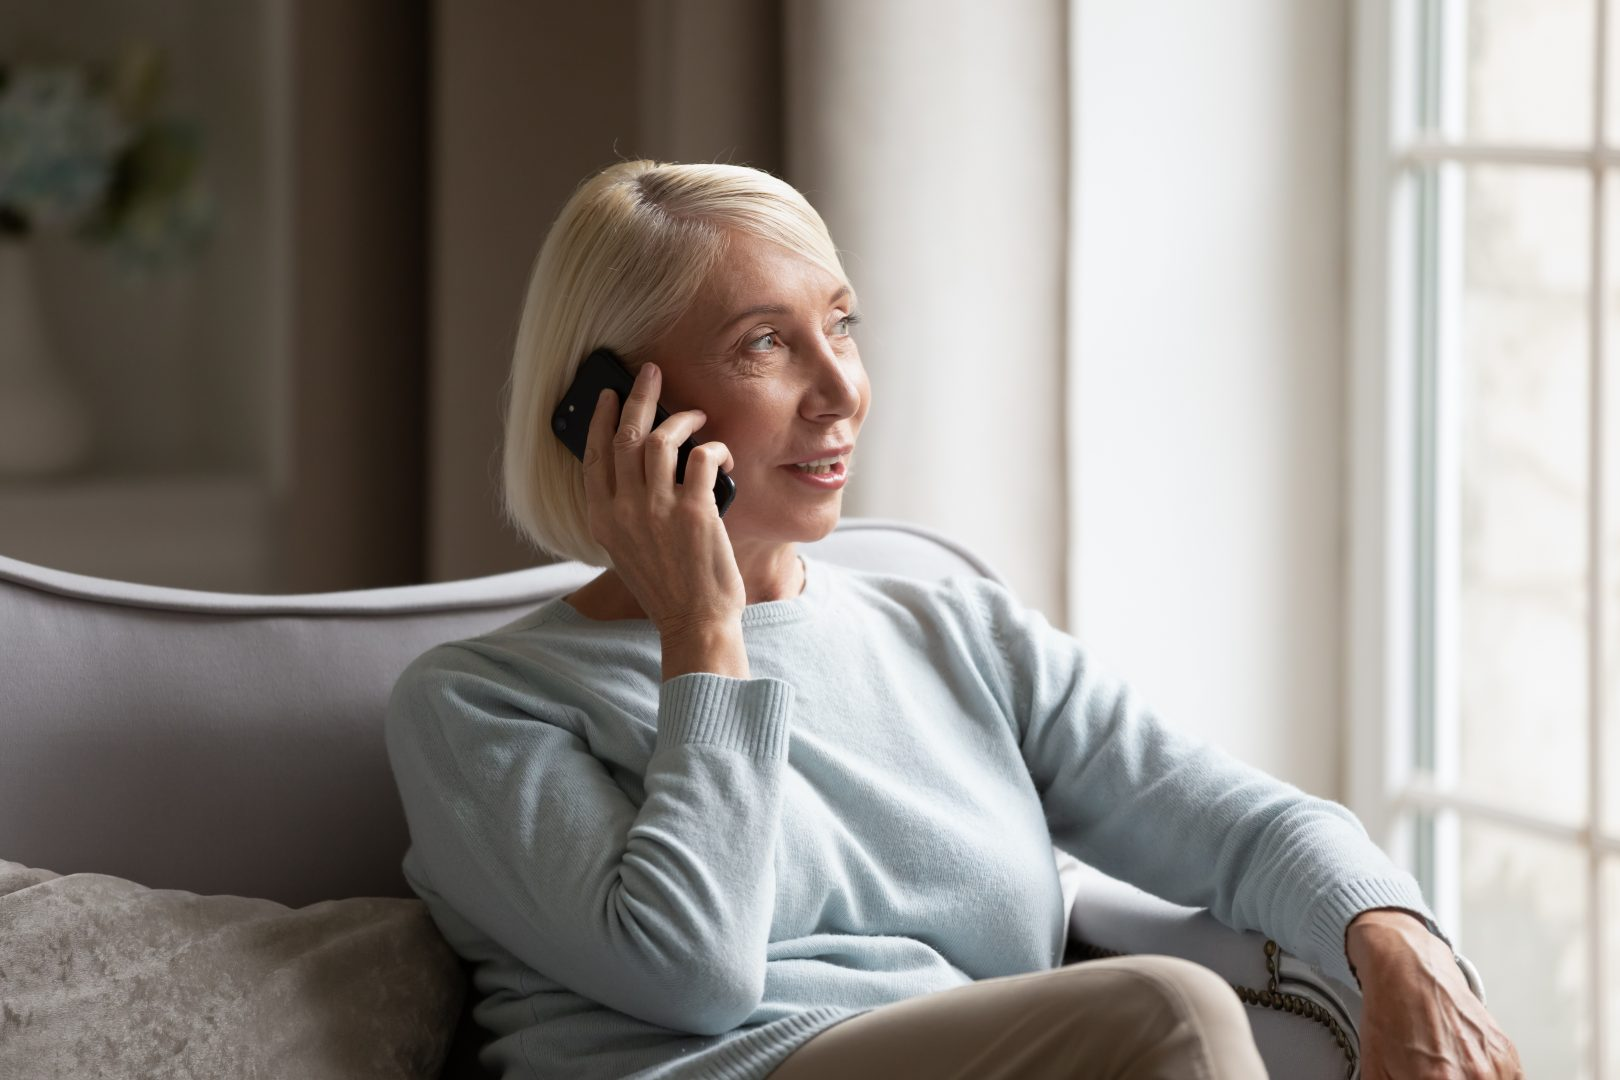 older woman staying social during social distancing by talking on phone